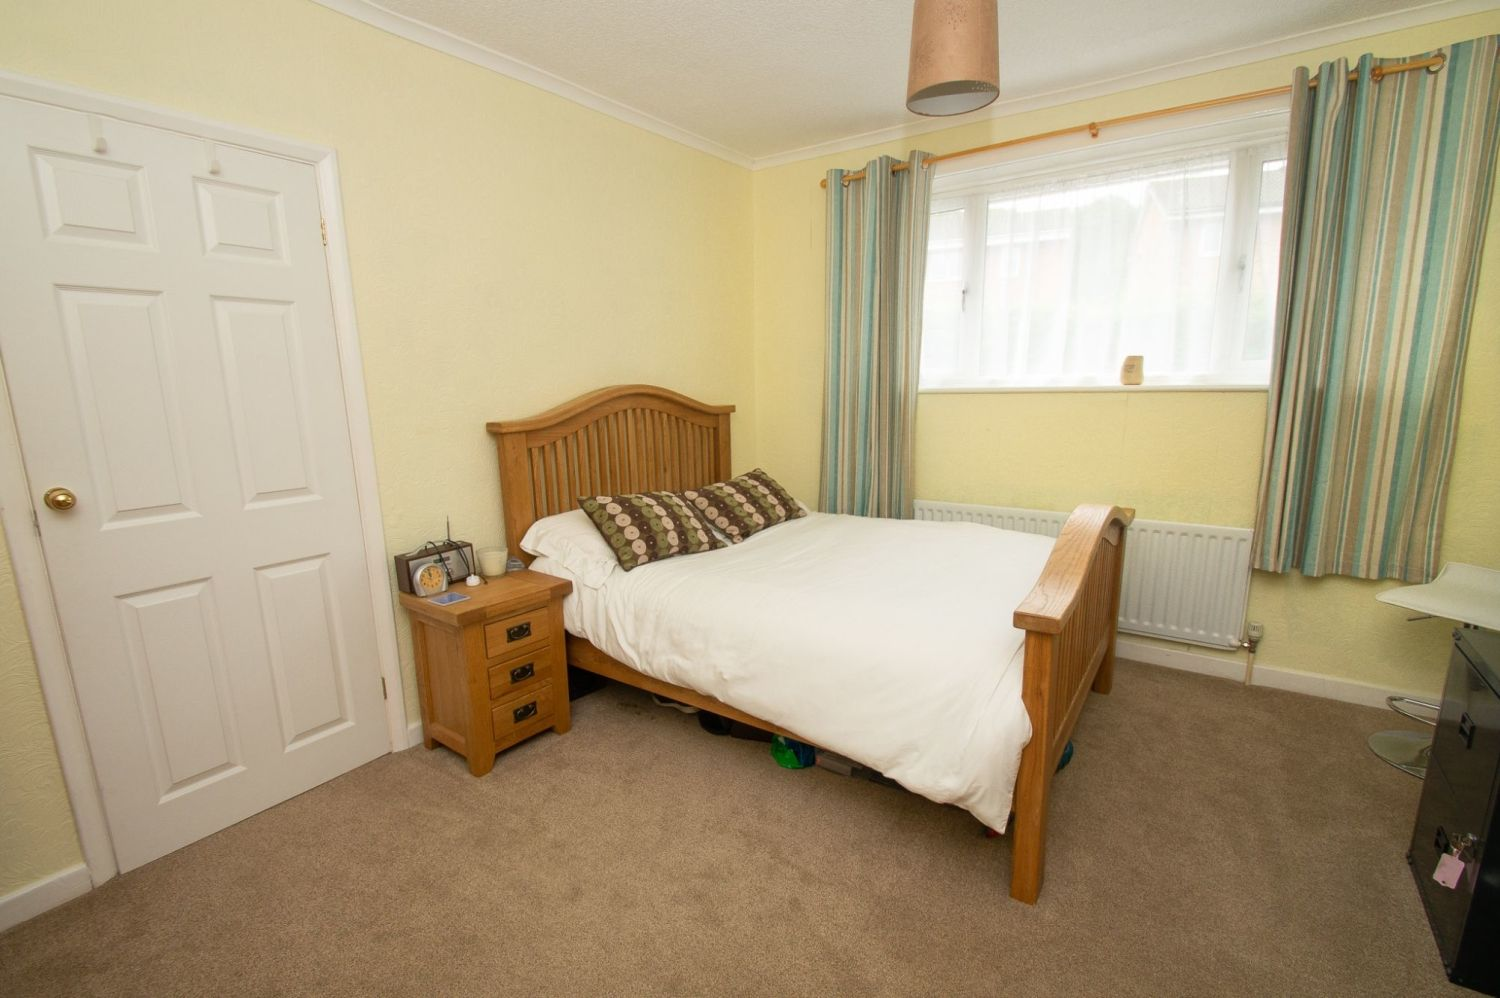 3 bed semi-detached for sale in Vicarage Crescent, Redditch  - Property Image 7